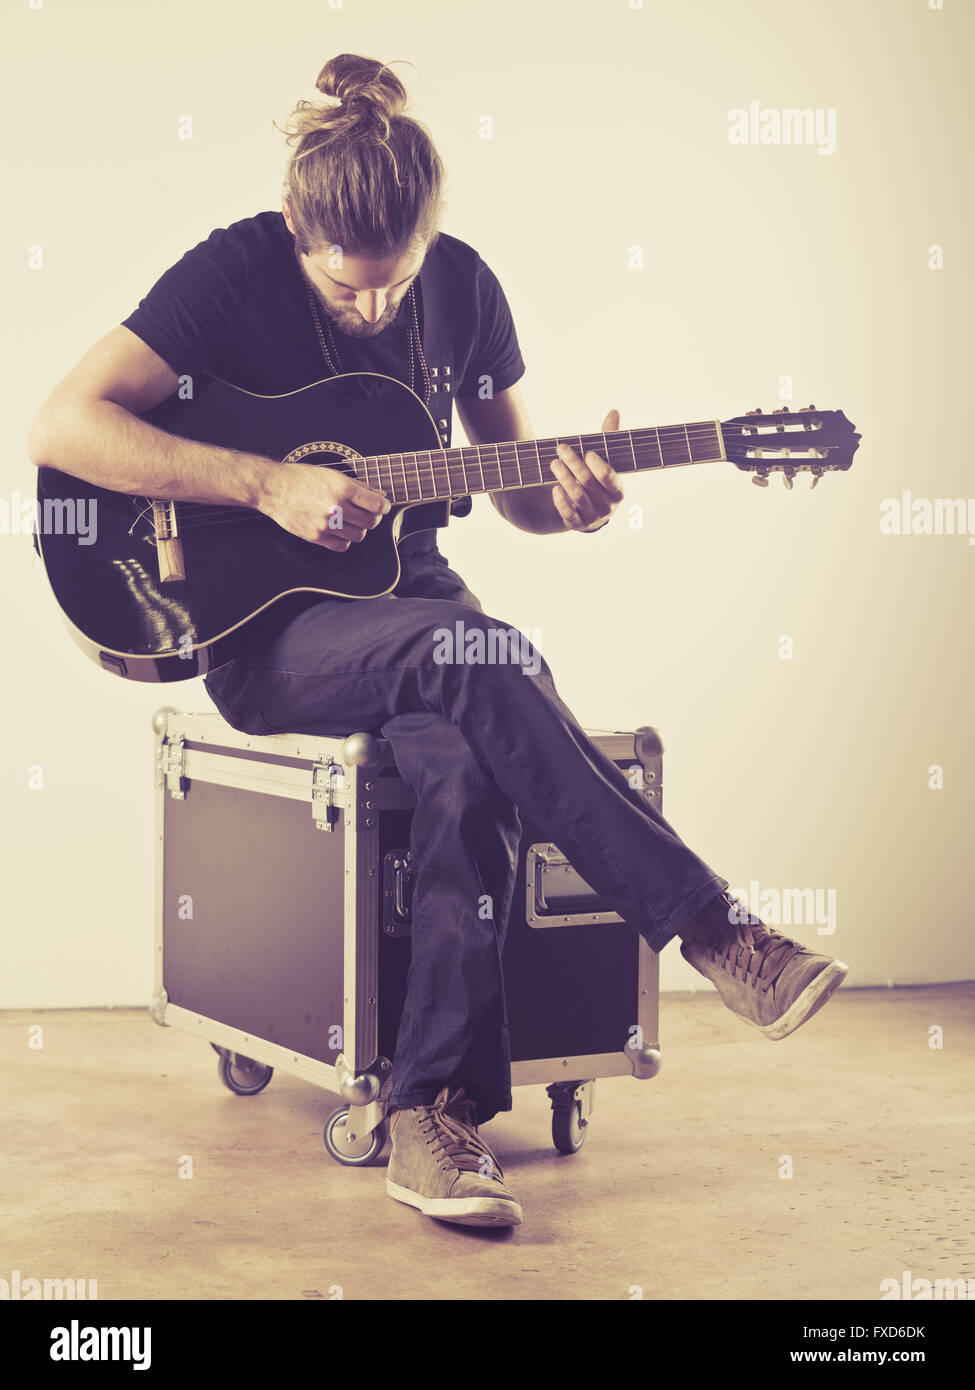 Photo of a young attractive man with long hair and beard sitting on a flight case and playing an acoustic guitar. - Stock Image